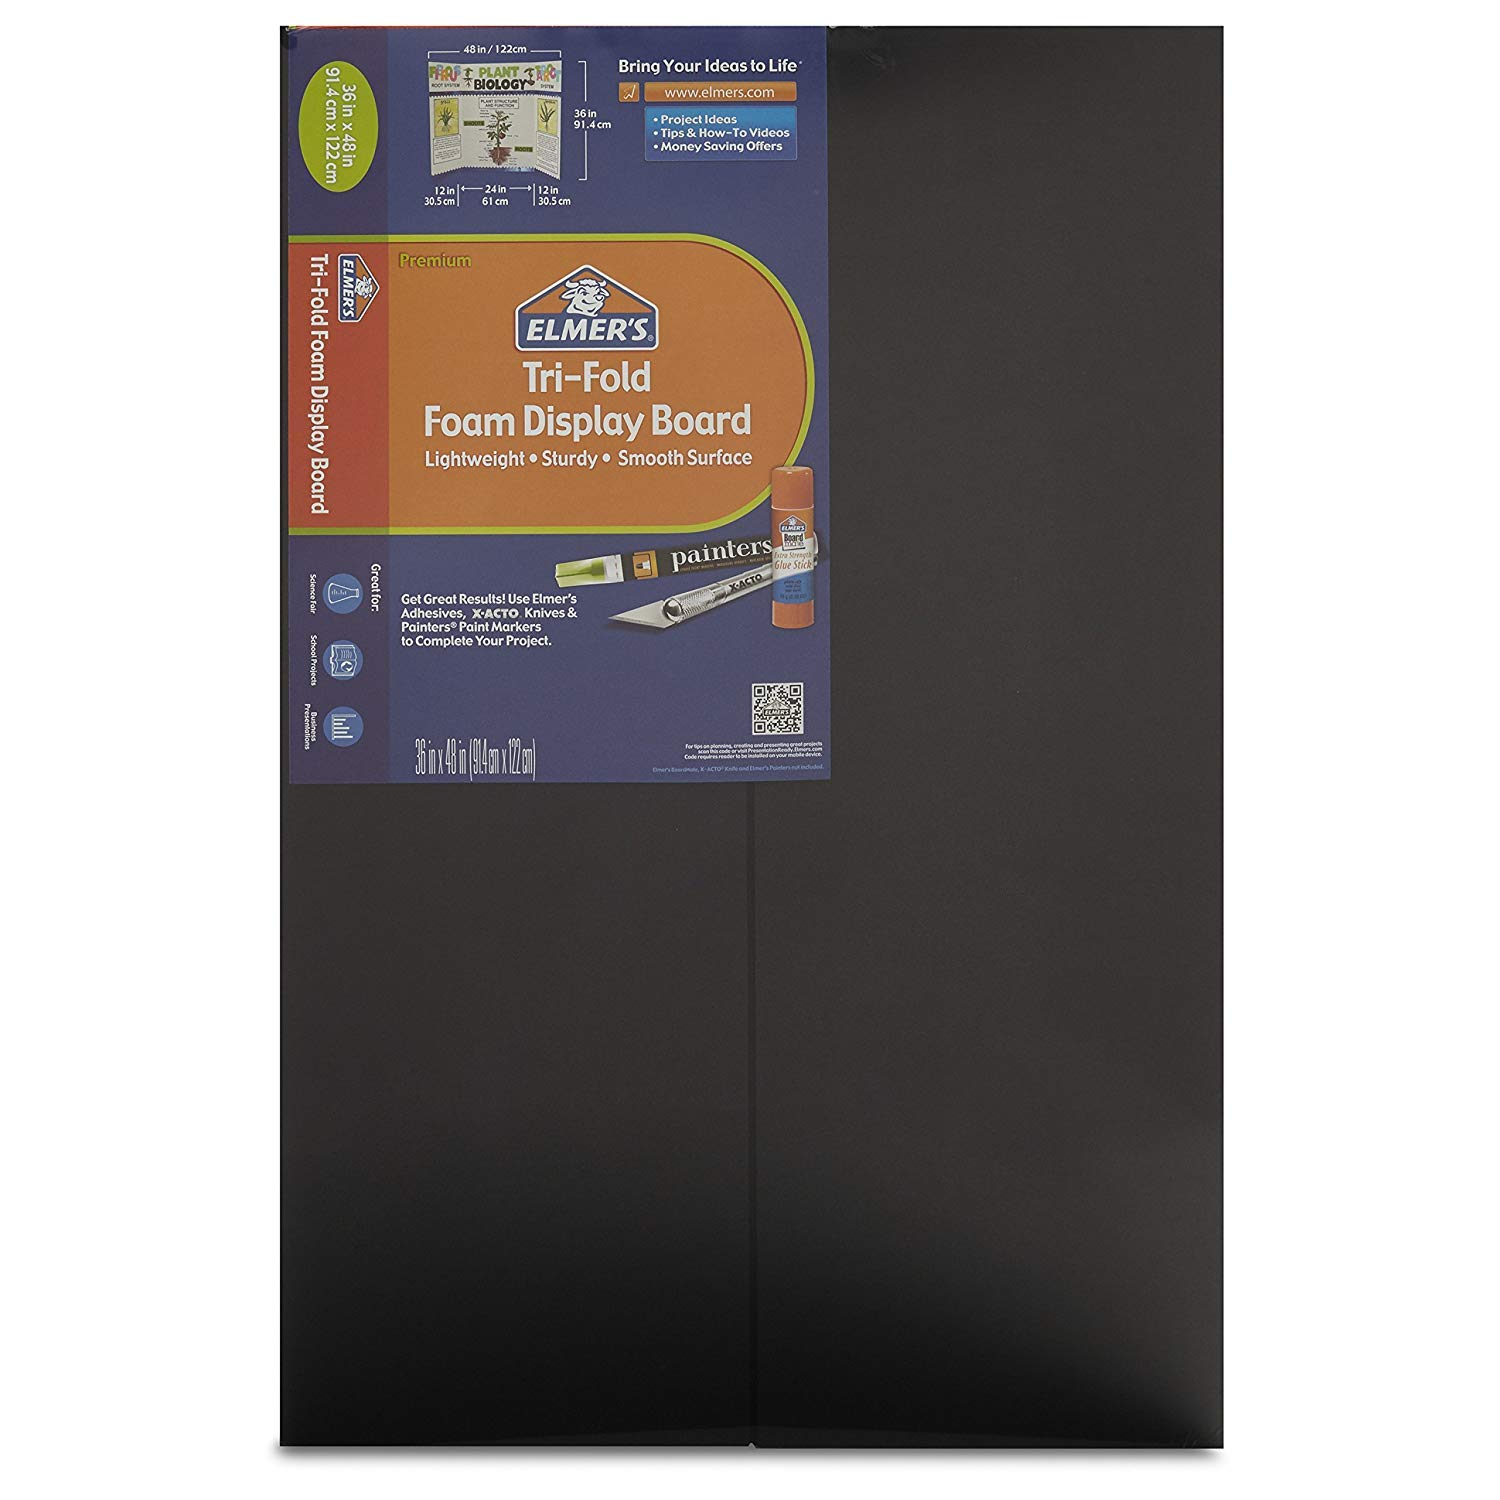 Elmer's Tri-Fold Foam Display Board, Black, 36x48 Inch, Pack of 12